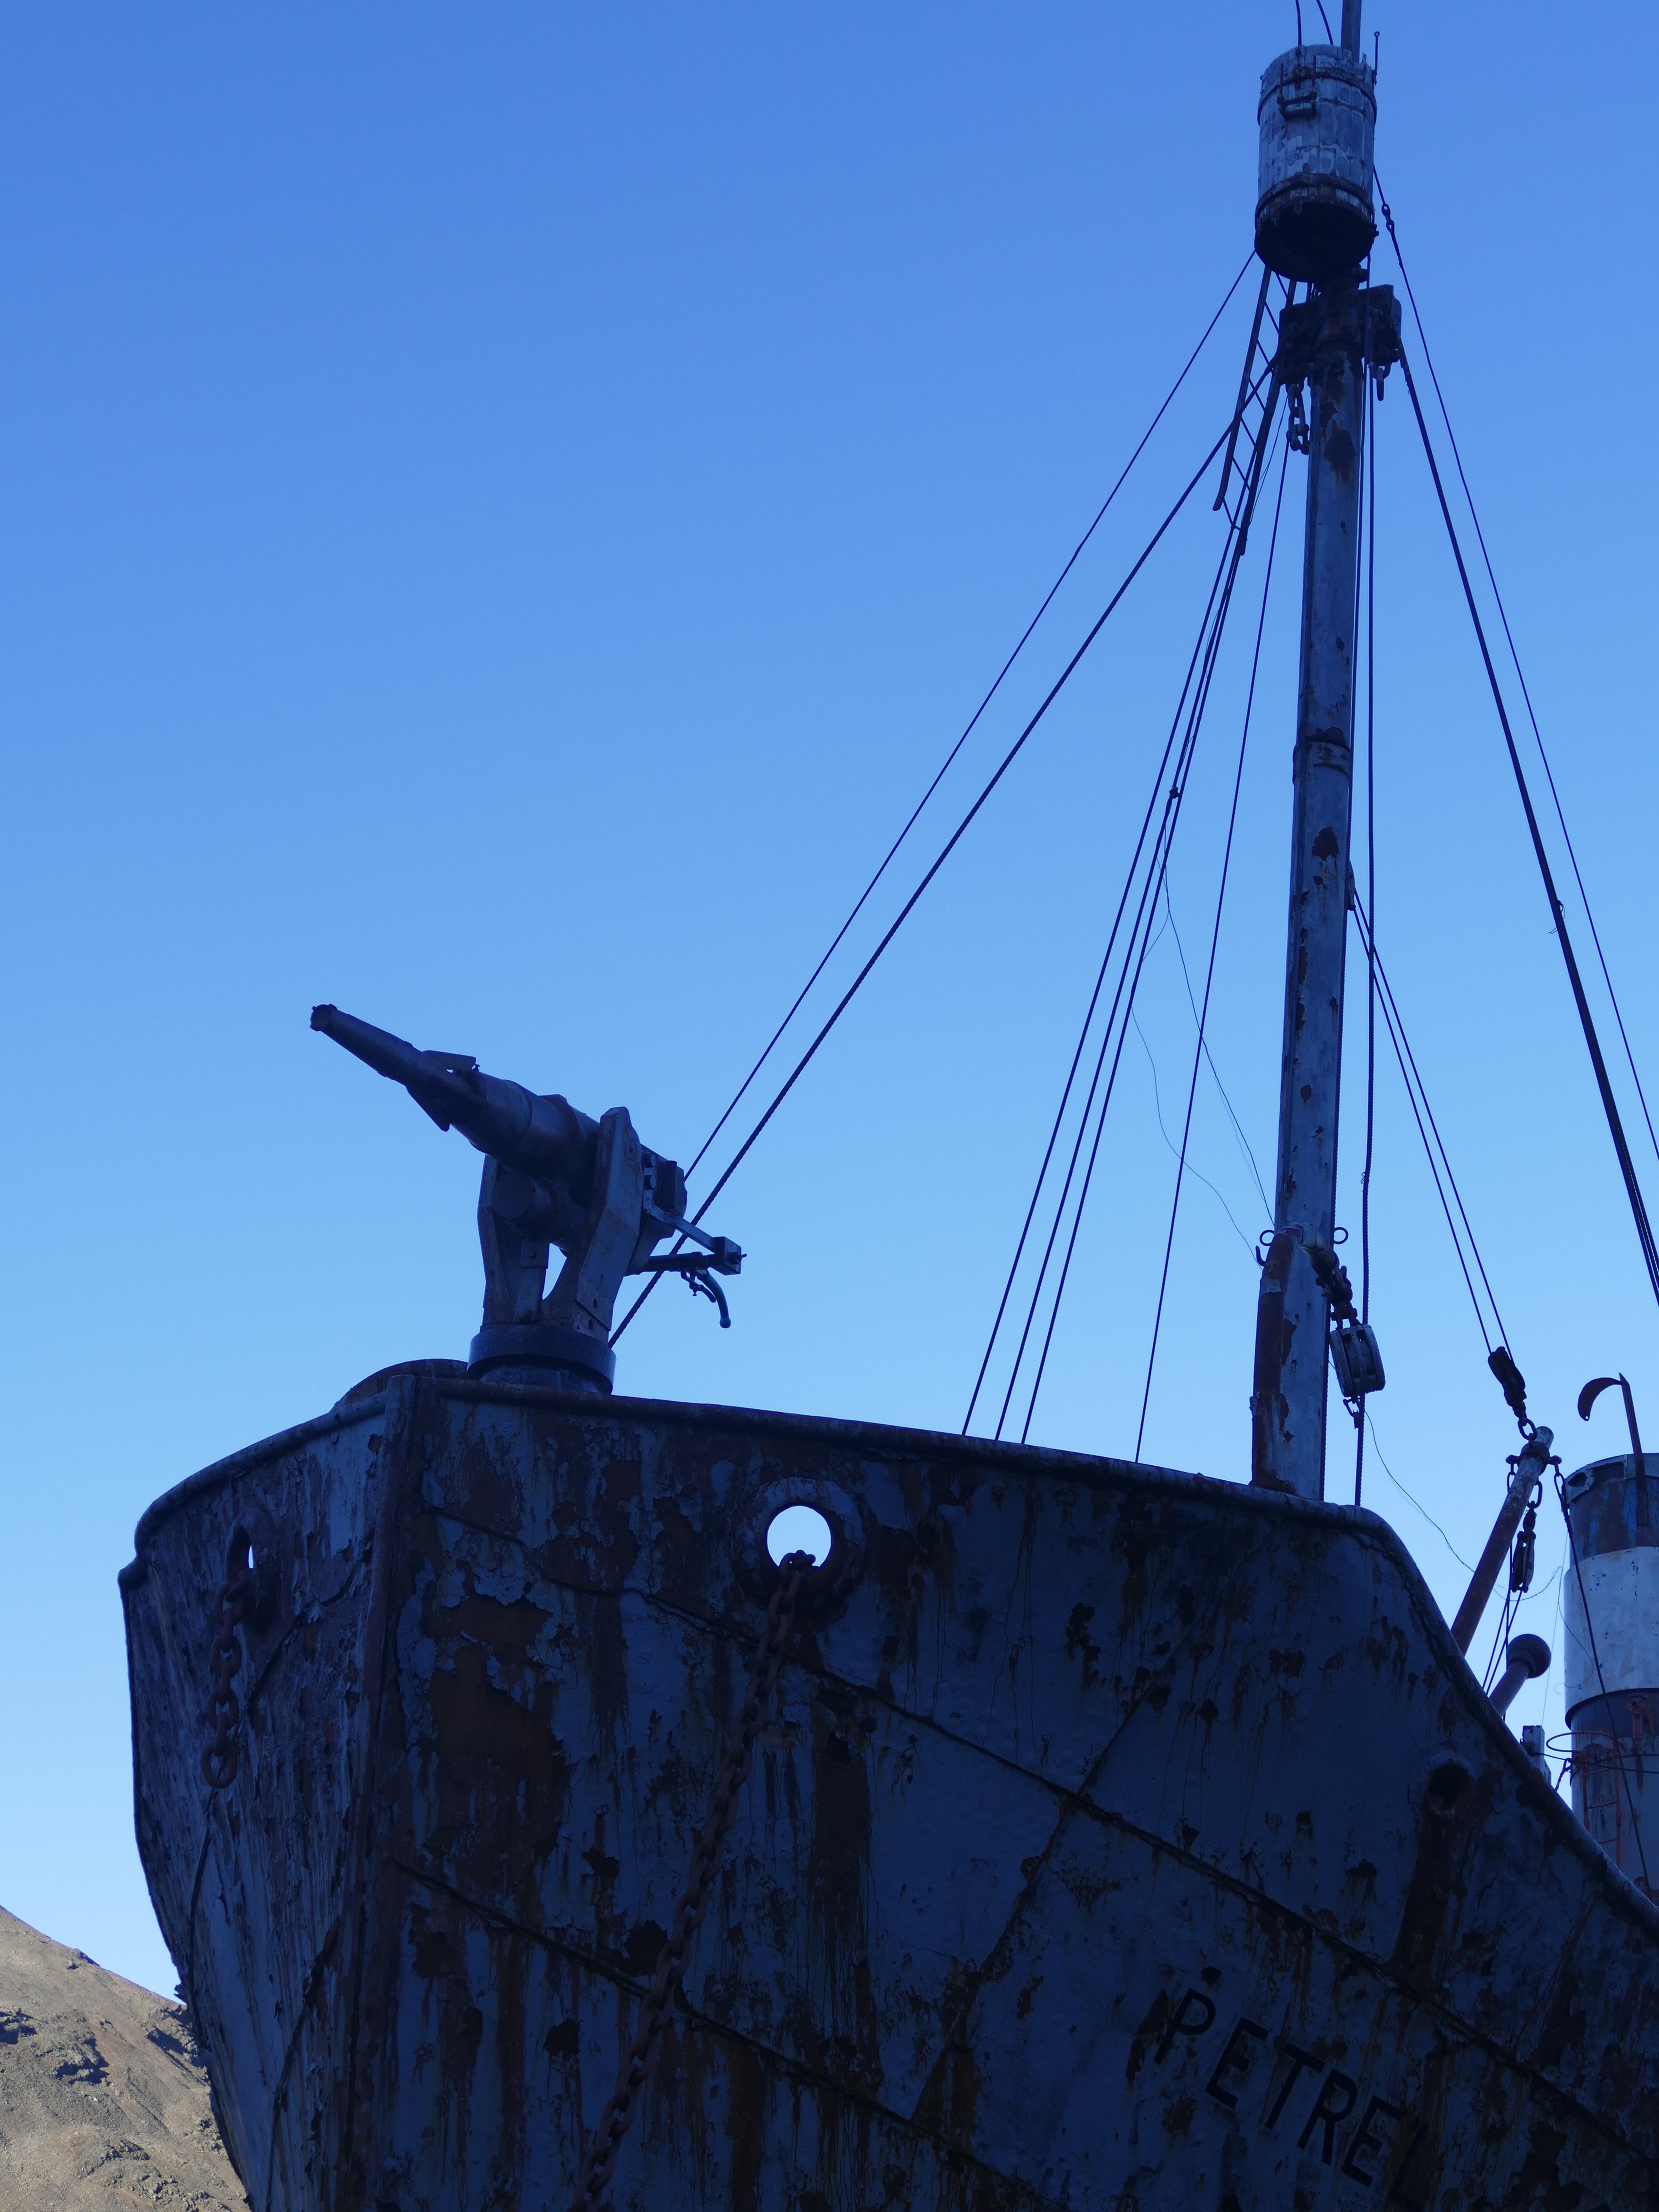 Petrel, a whaling chase boat at Grytviken